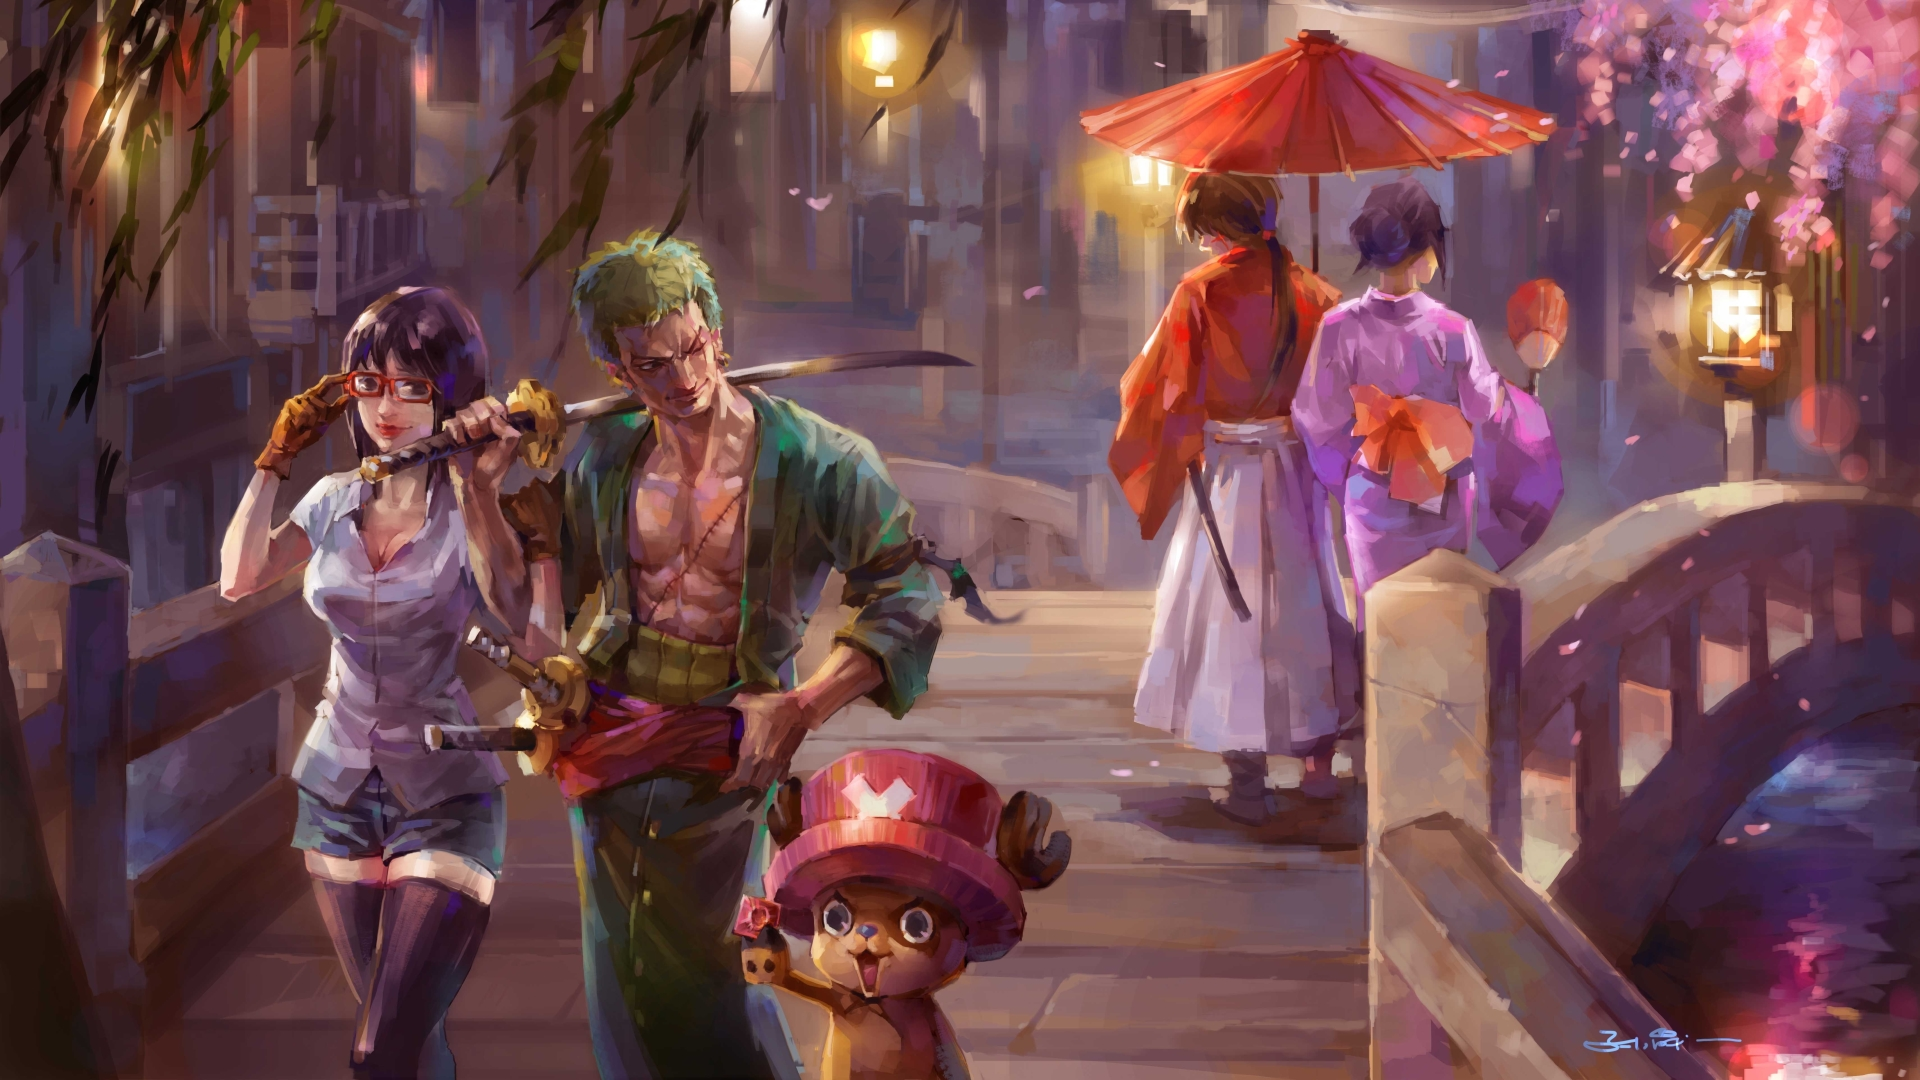 1920x1080 One Piece Painting 1080p Laptop Full Hd Wallpaper